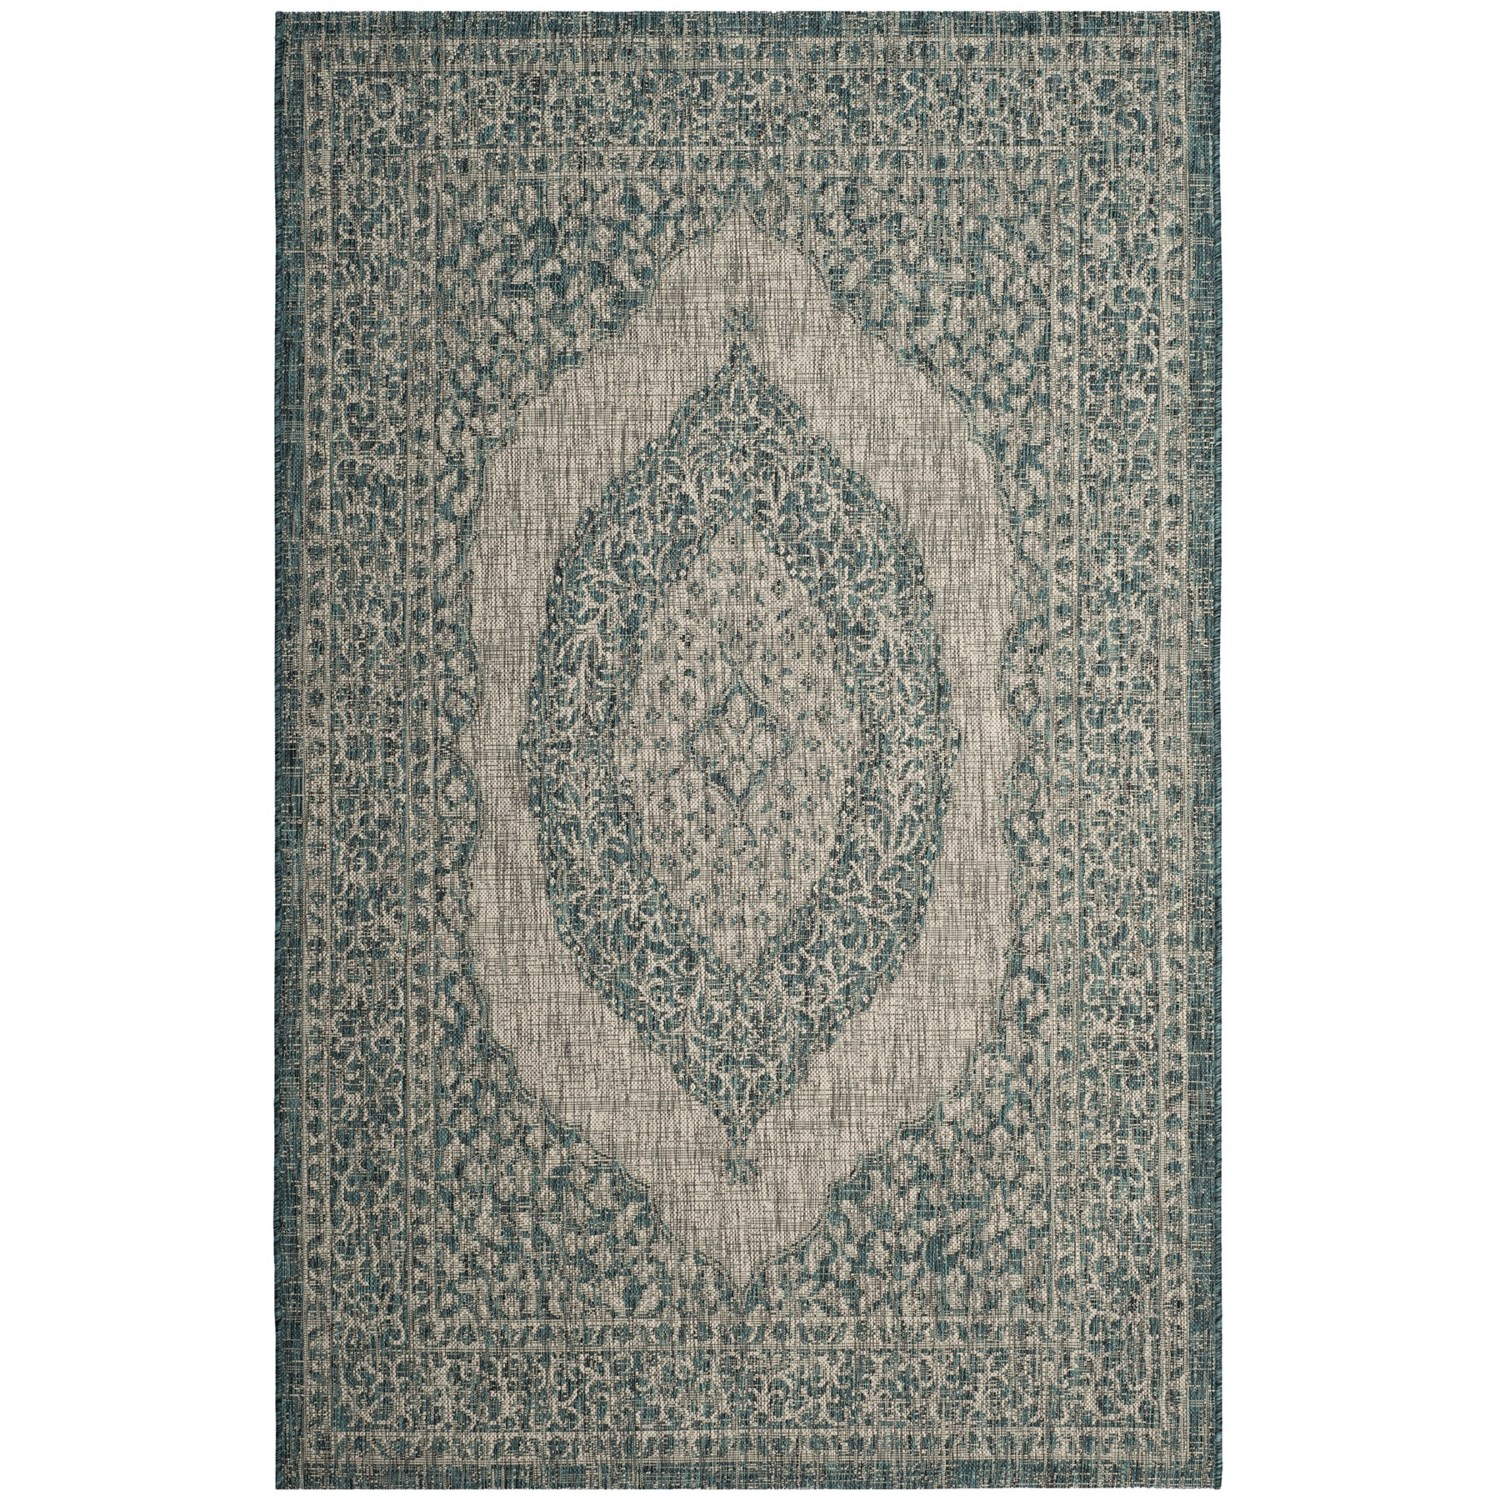 Safavieh Courtyard Safavieh Courtyard Collection Medallion Indoor Outdoor Area Rug